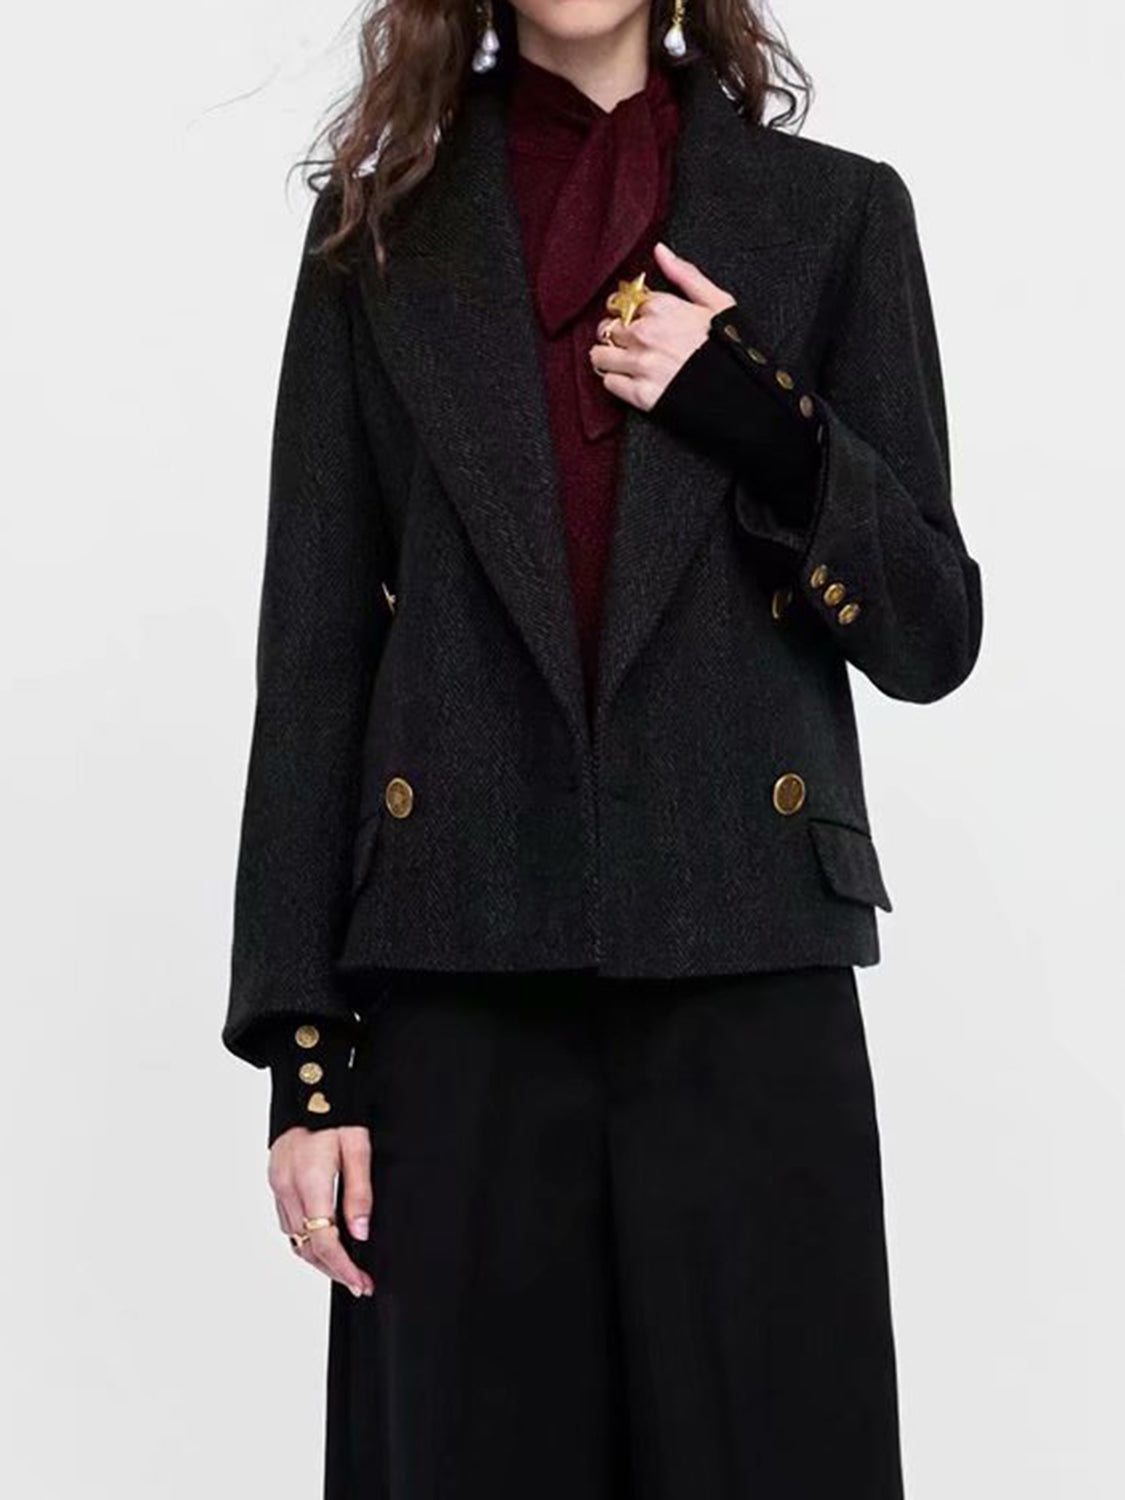 Black Women Coat Lapel Pockets Detail Long Sleeve